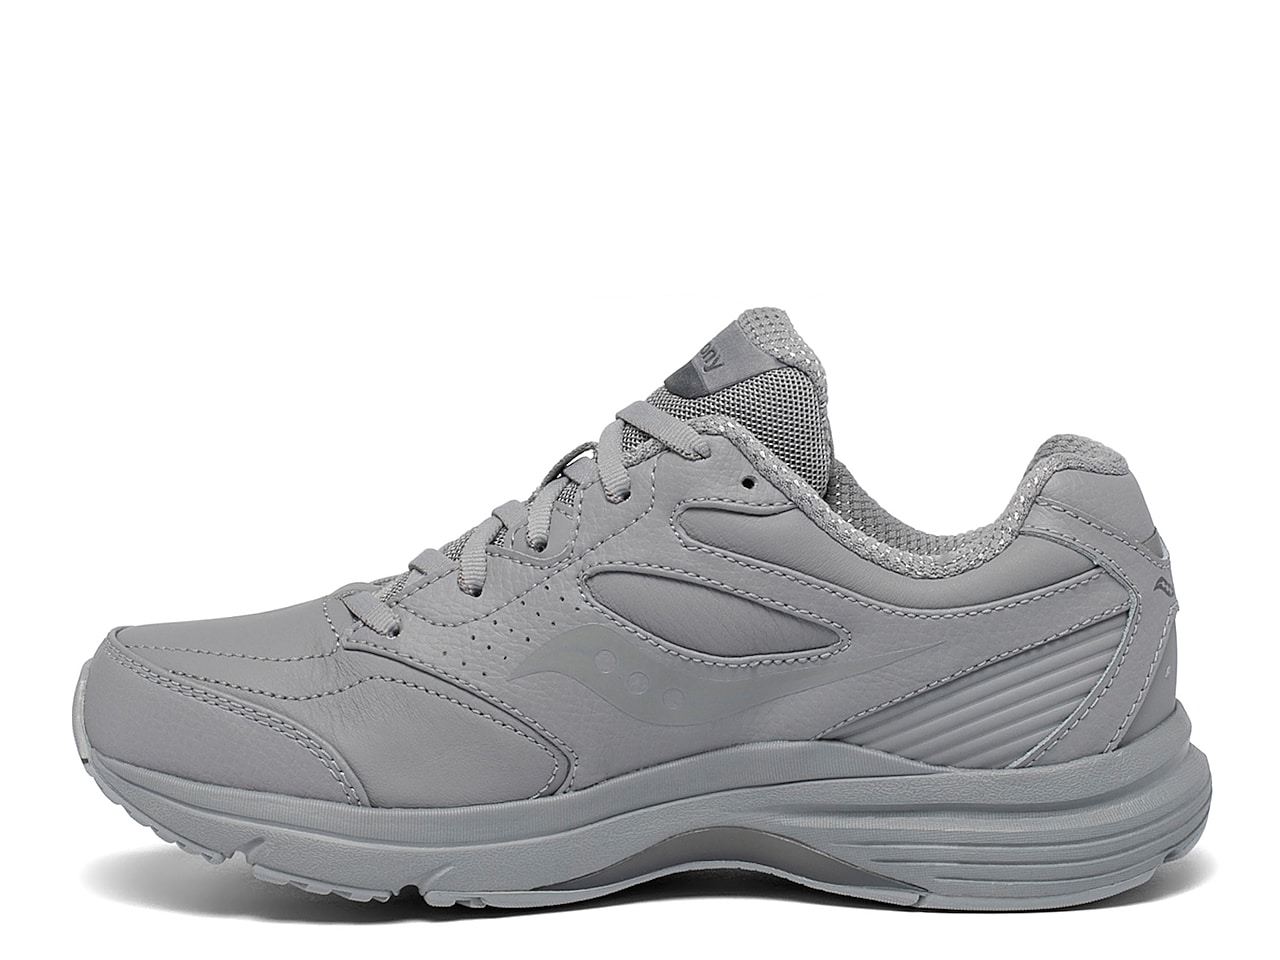 Details about  /SAUCONY WOMEN/'S INTEGRITY WALKER 3 WHITE EXTRA WIDE E WIDTH  SLIP RESISTANT NEW